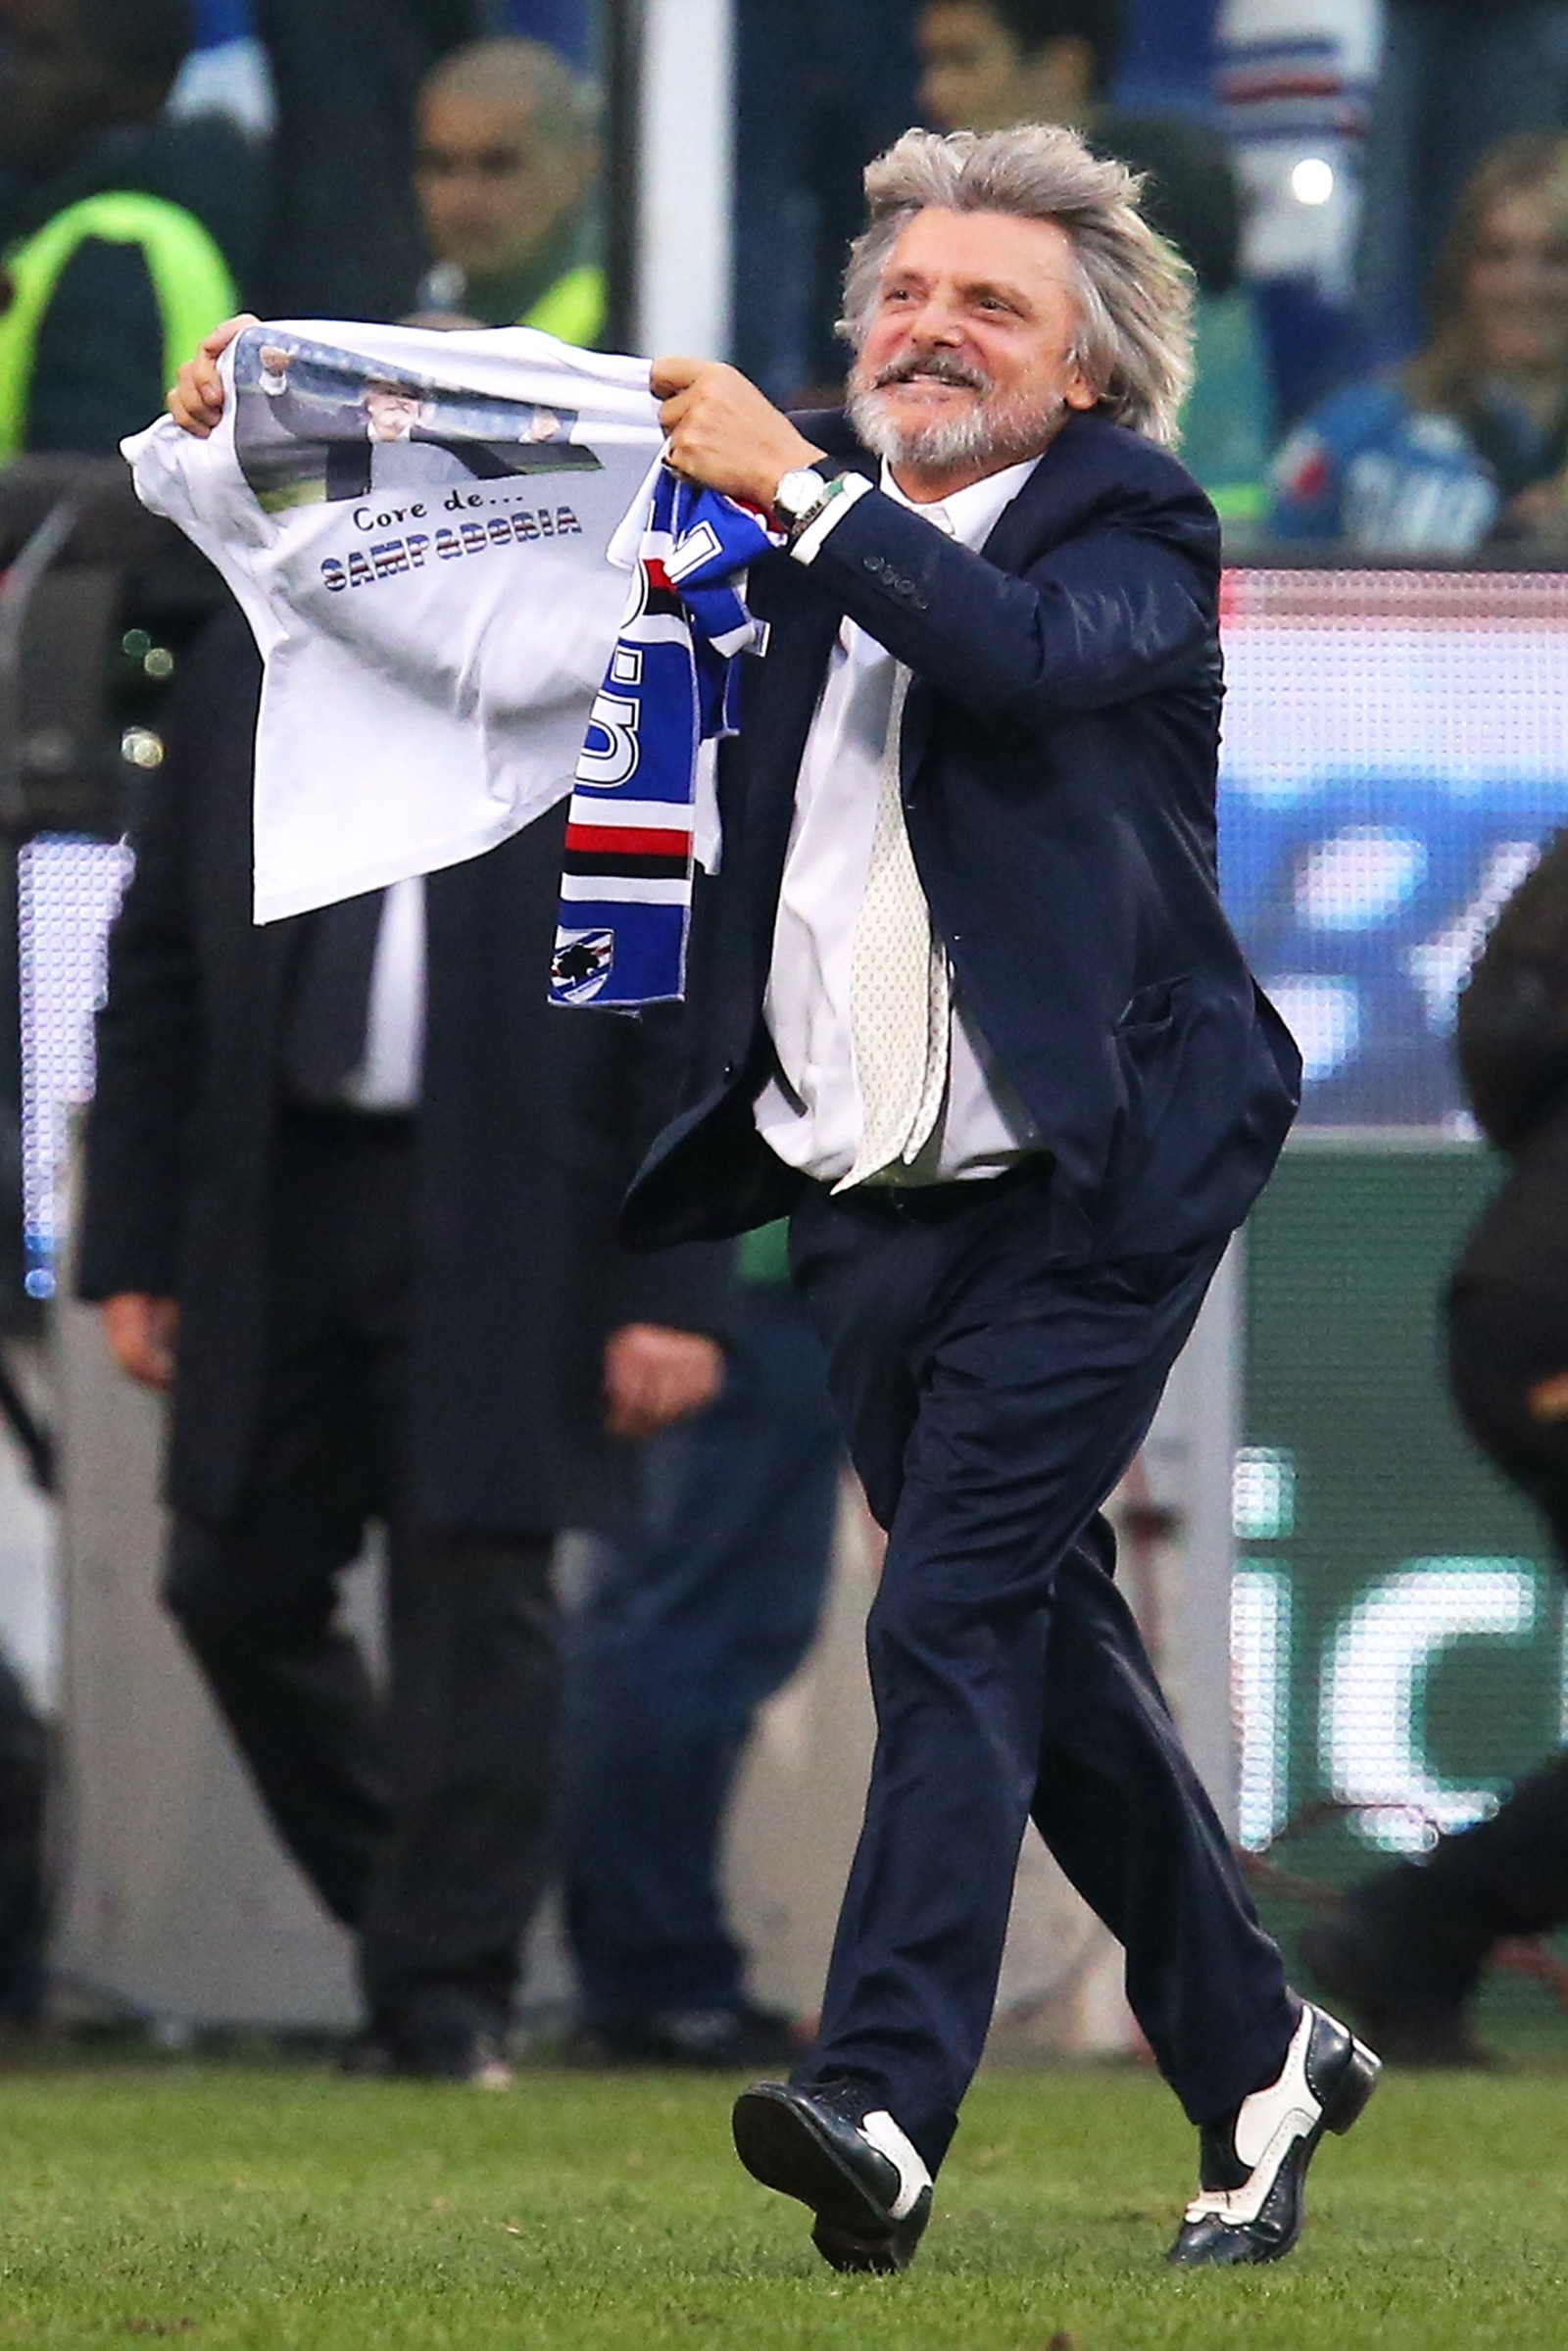 Sampdoria's president Massimo Ferrero celebrates at the end of the Italian Serie A football match Sampdoria Vs Fiorentina on November 2, 2014 at Luigi Ferraris Stadium in Genoa.